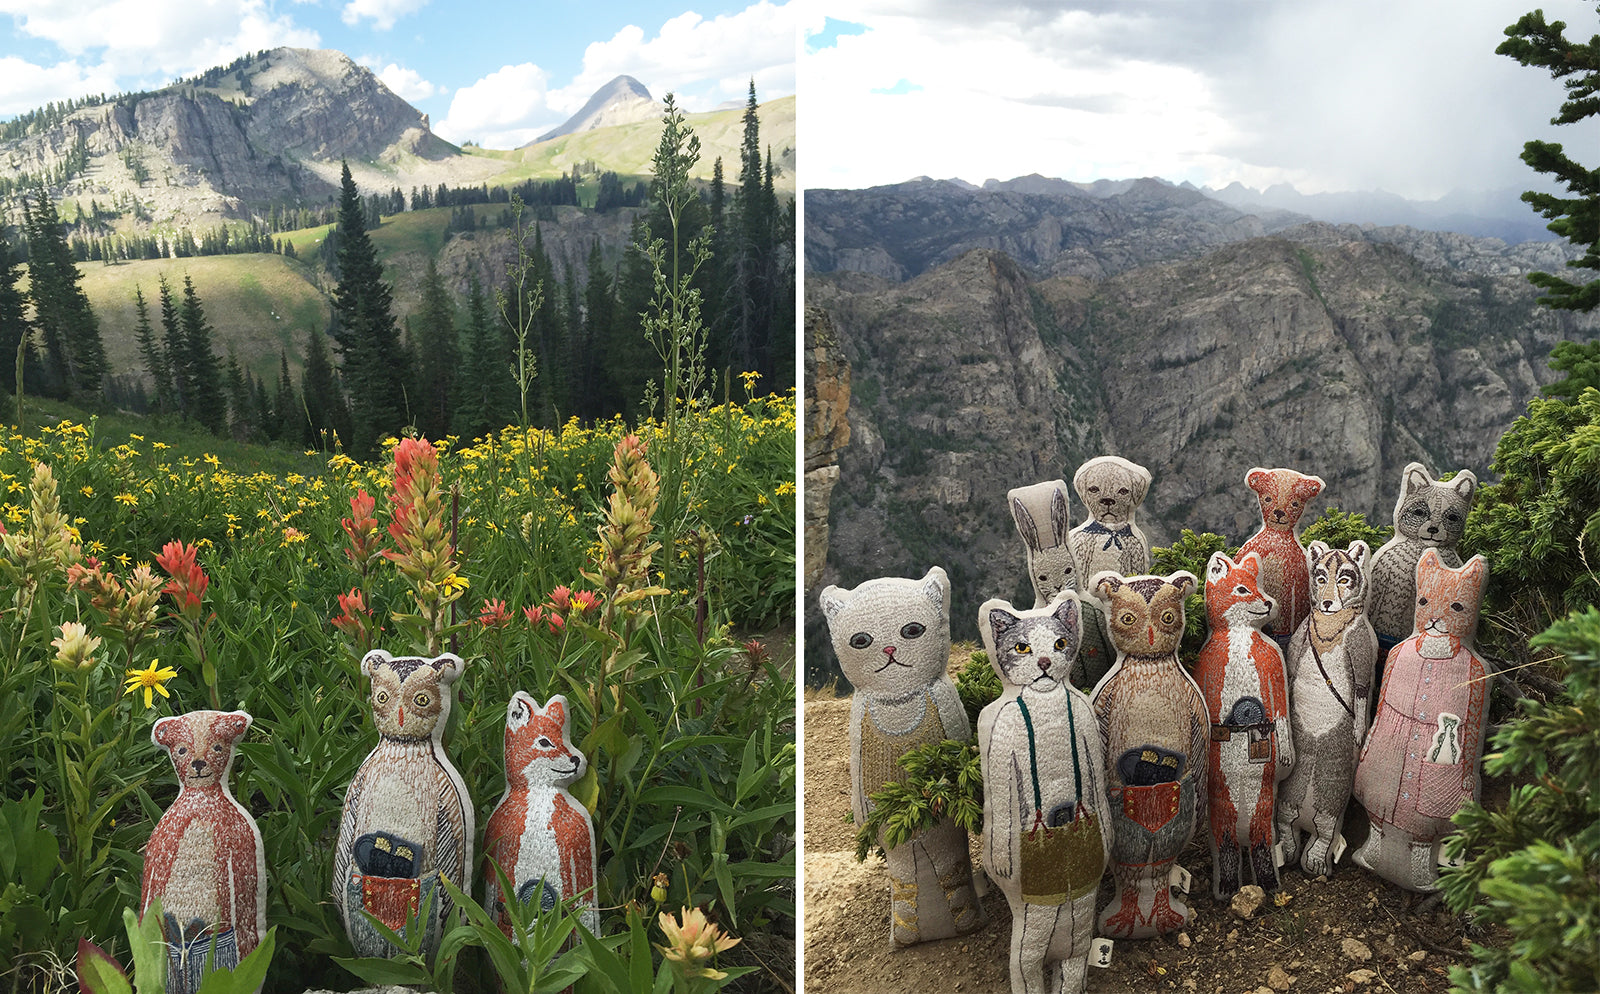 Coral & Tusk dolls at Grand Teton National Park and Sacred Rim in Wyoming